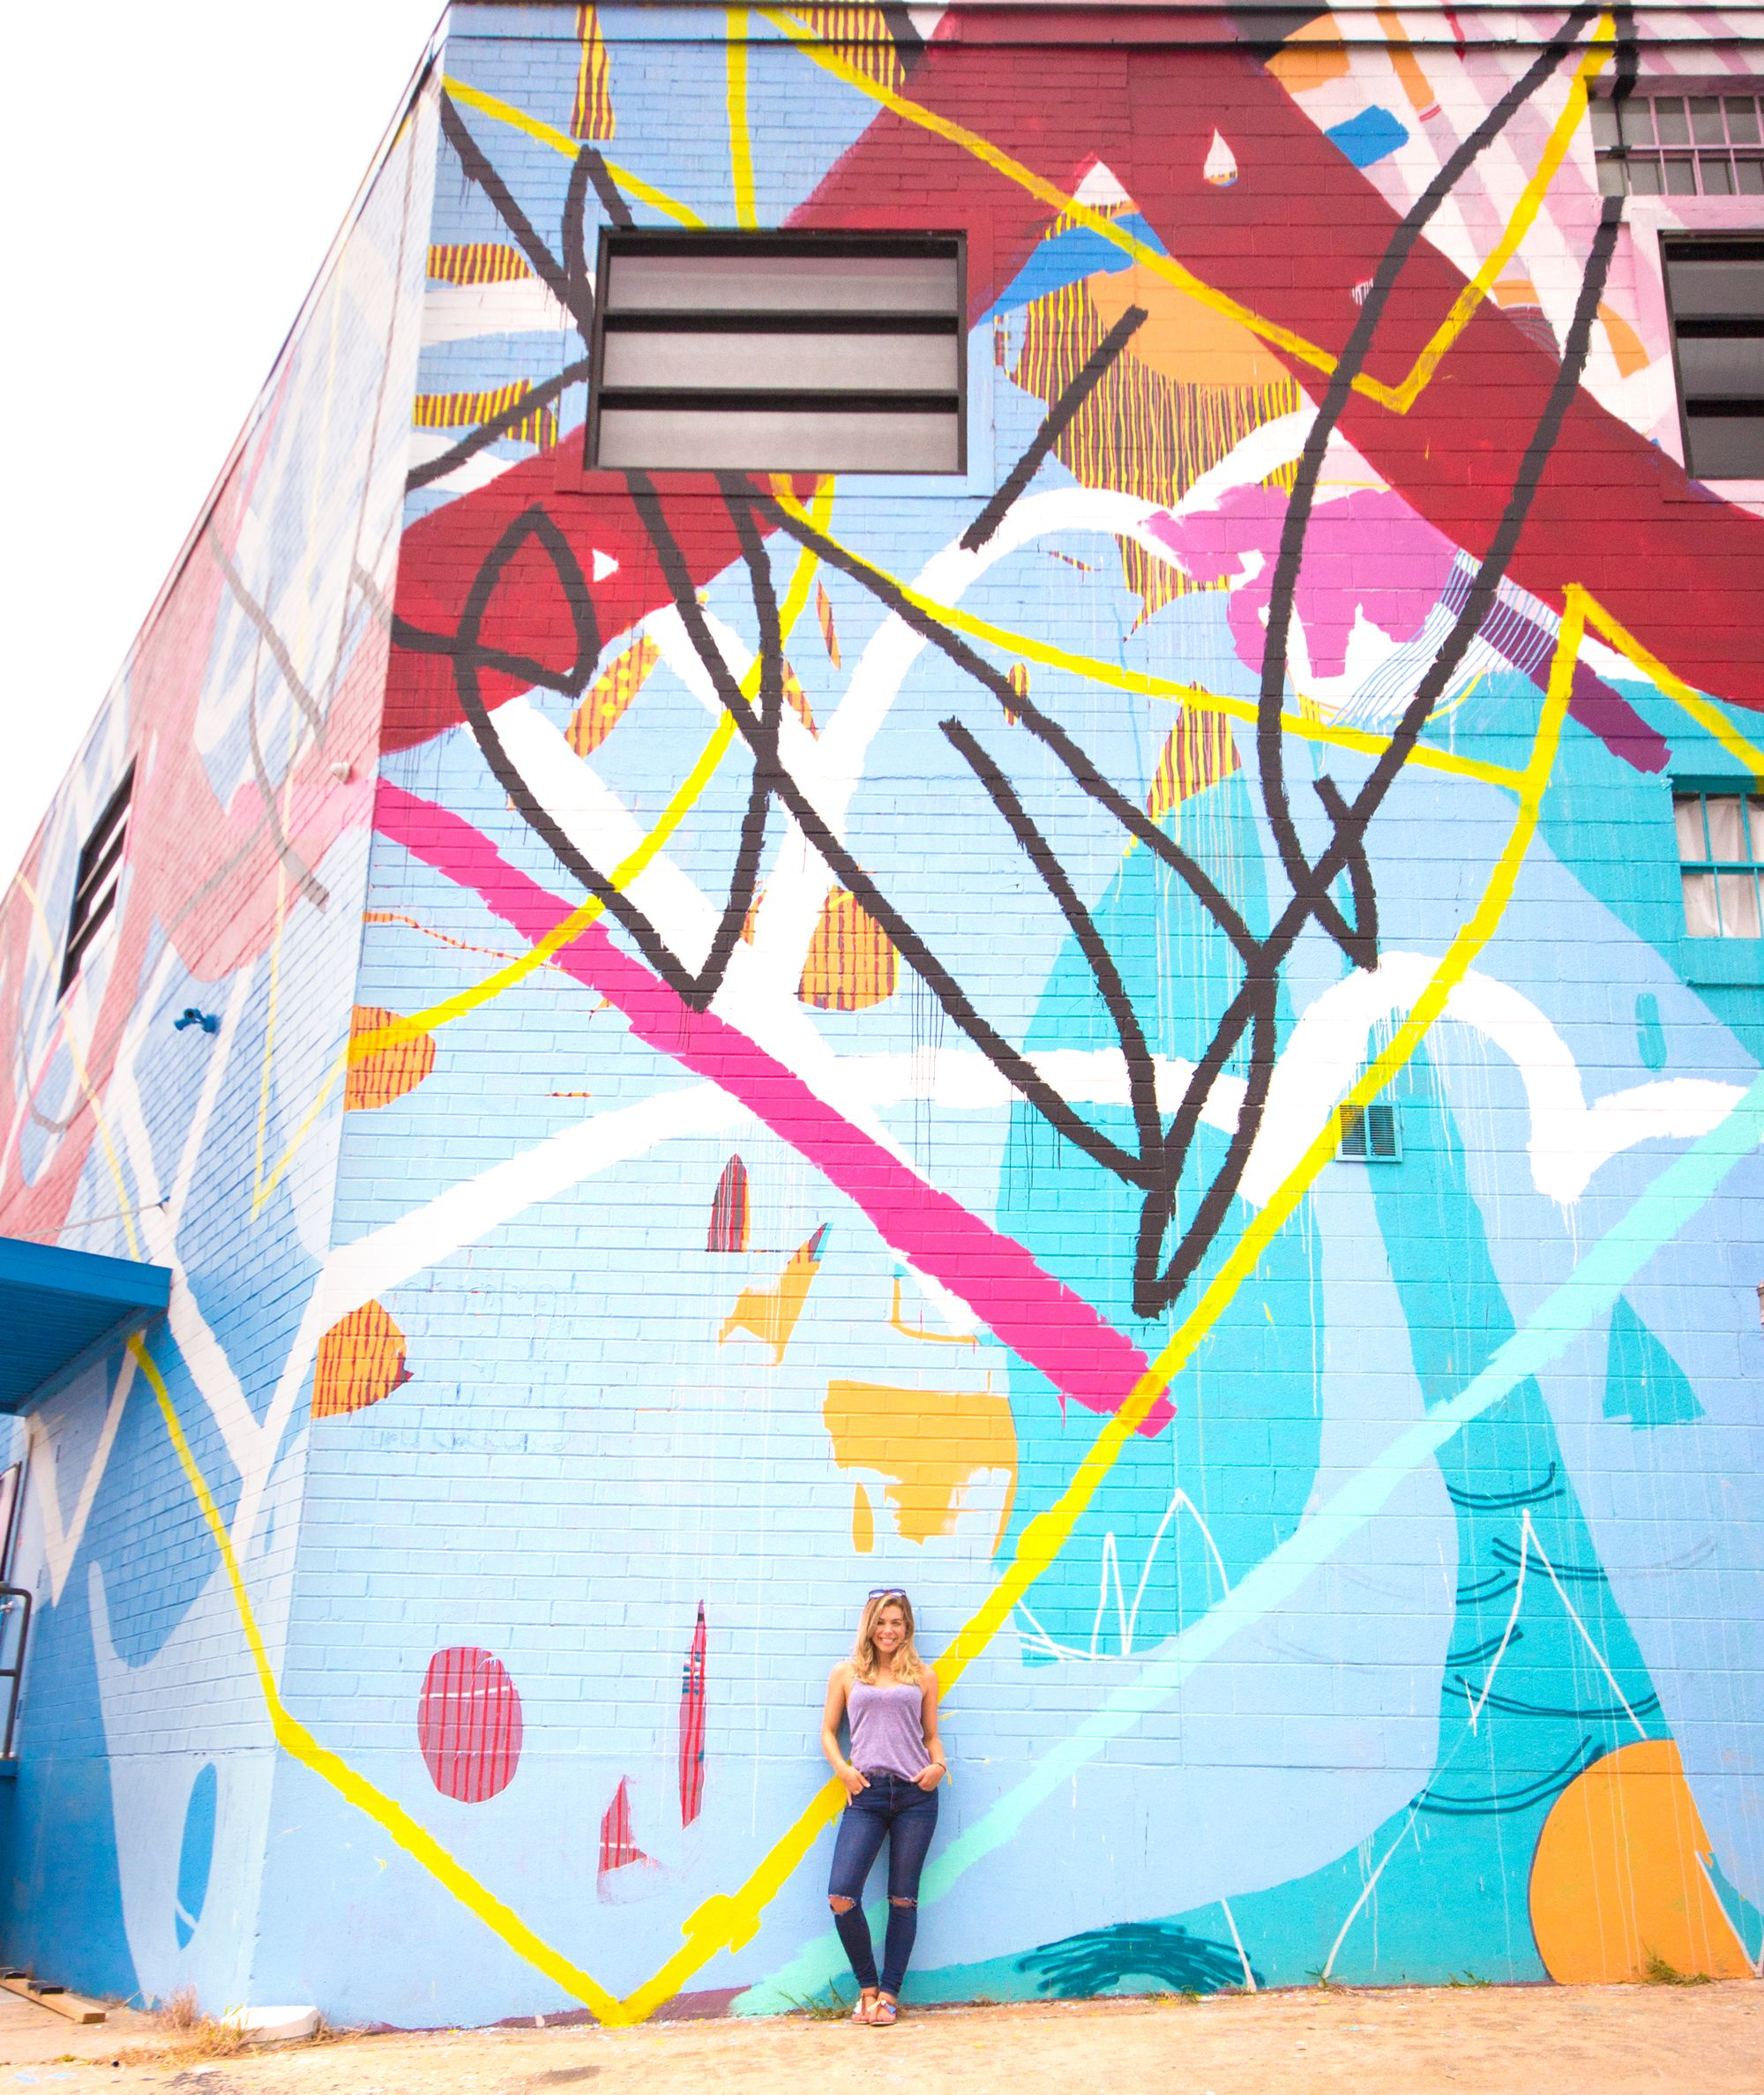 Posing in front of a large colorful mural.